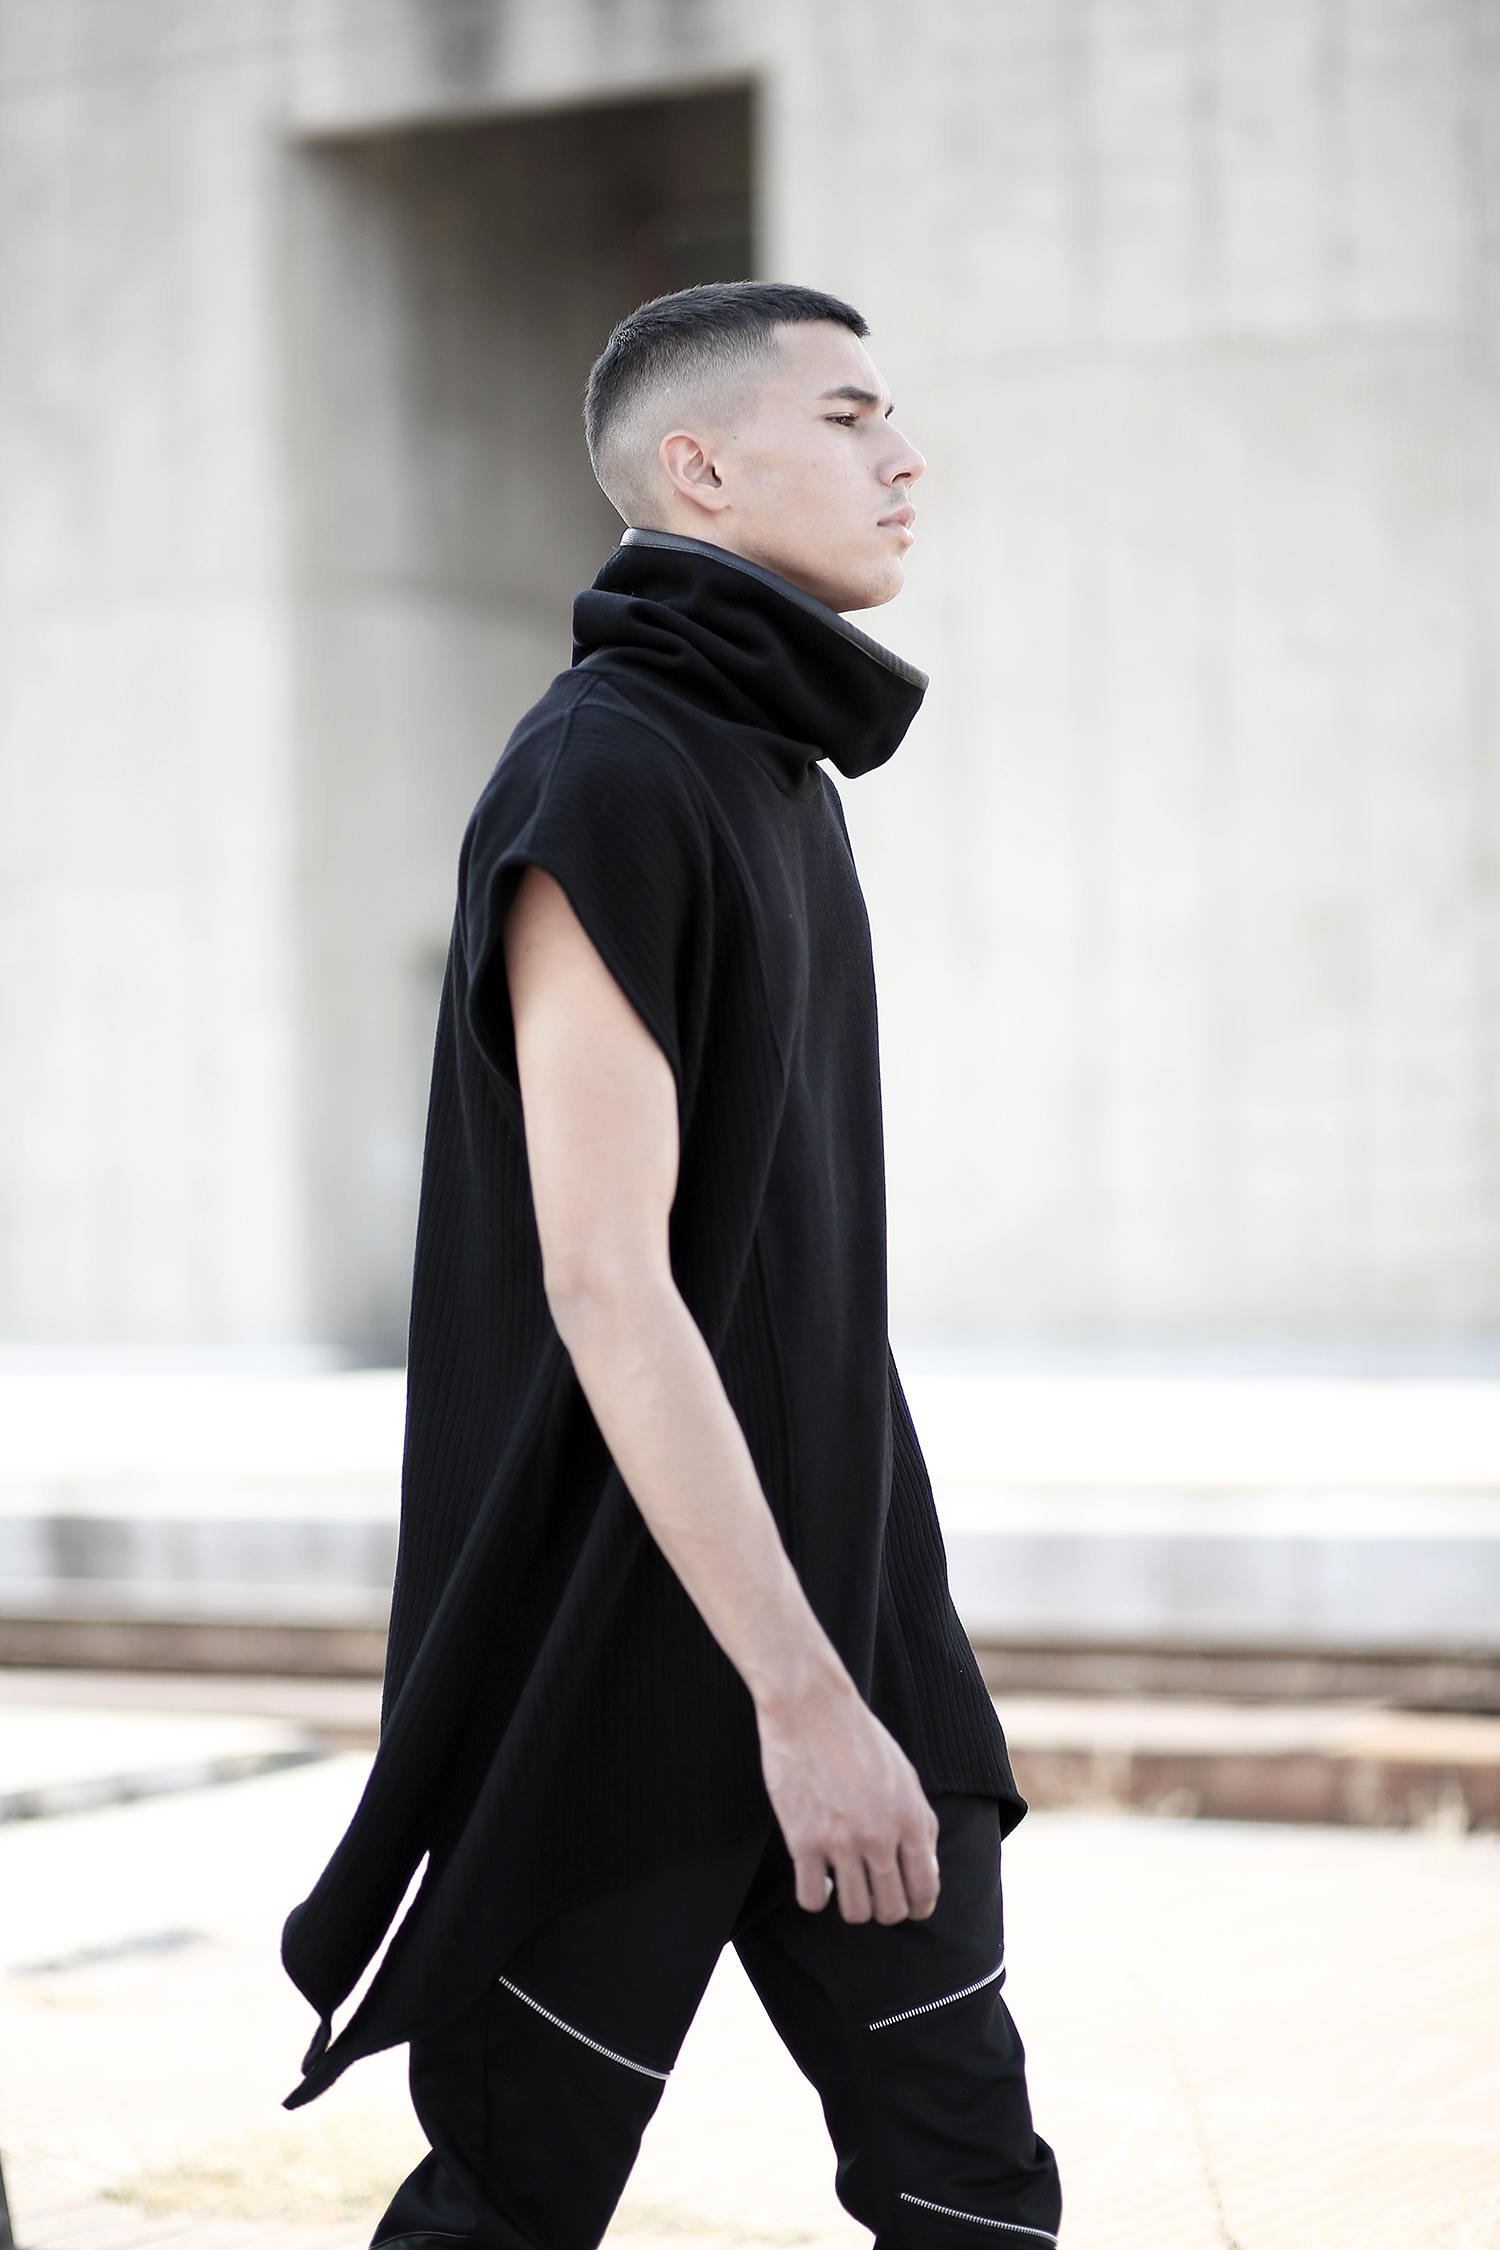 Man poncho made of quality blend wool felt, mix of 2 patterns designed with faux leather stripe on the back. A perfect designer piece for alternative and black fashion lovers.